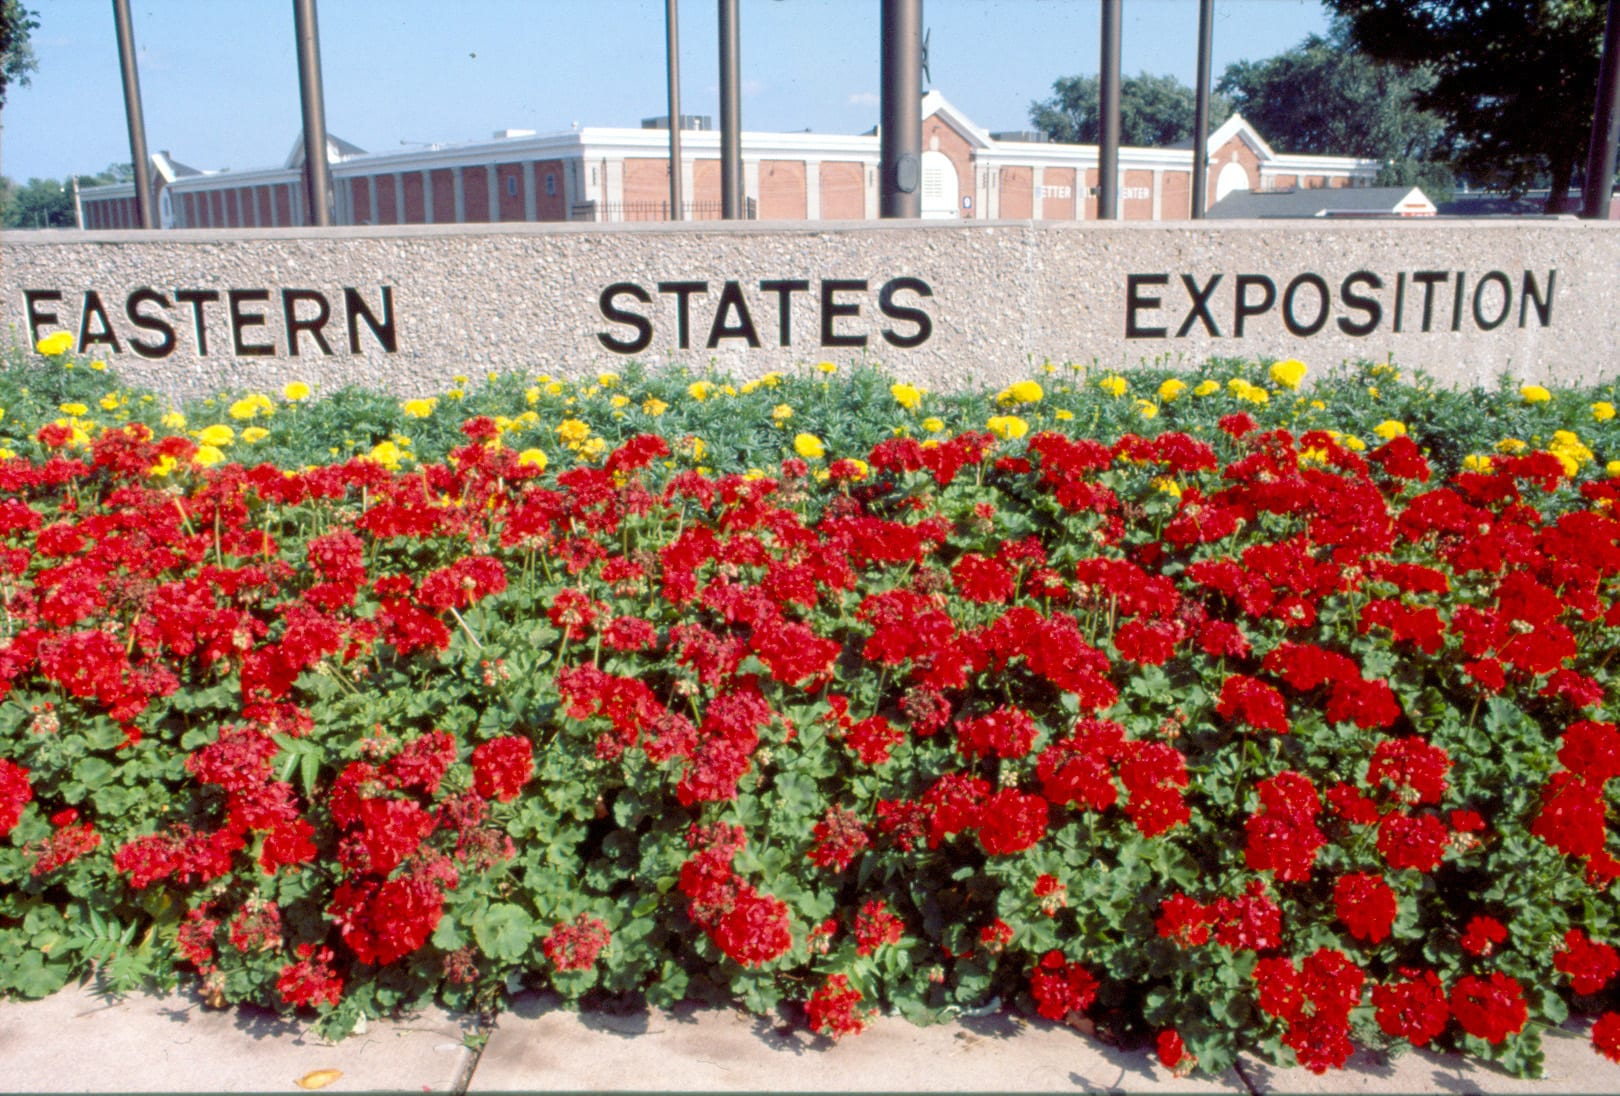 Eastern States Exposition Entrance